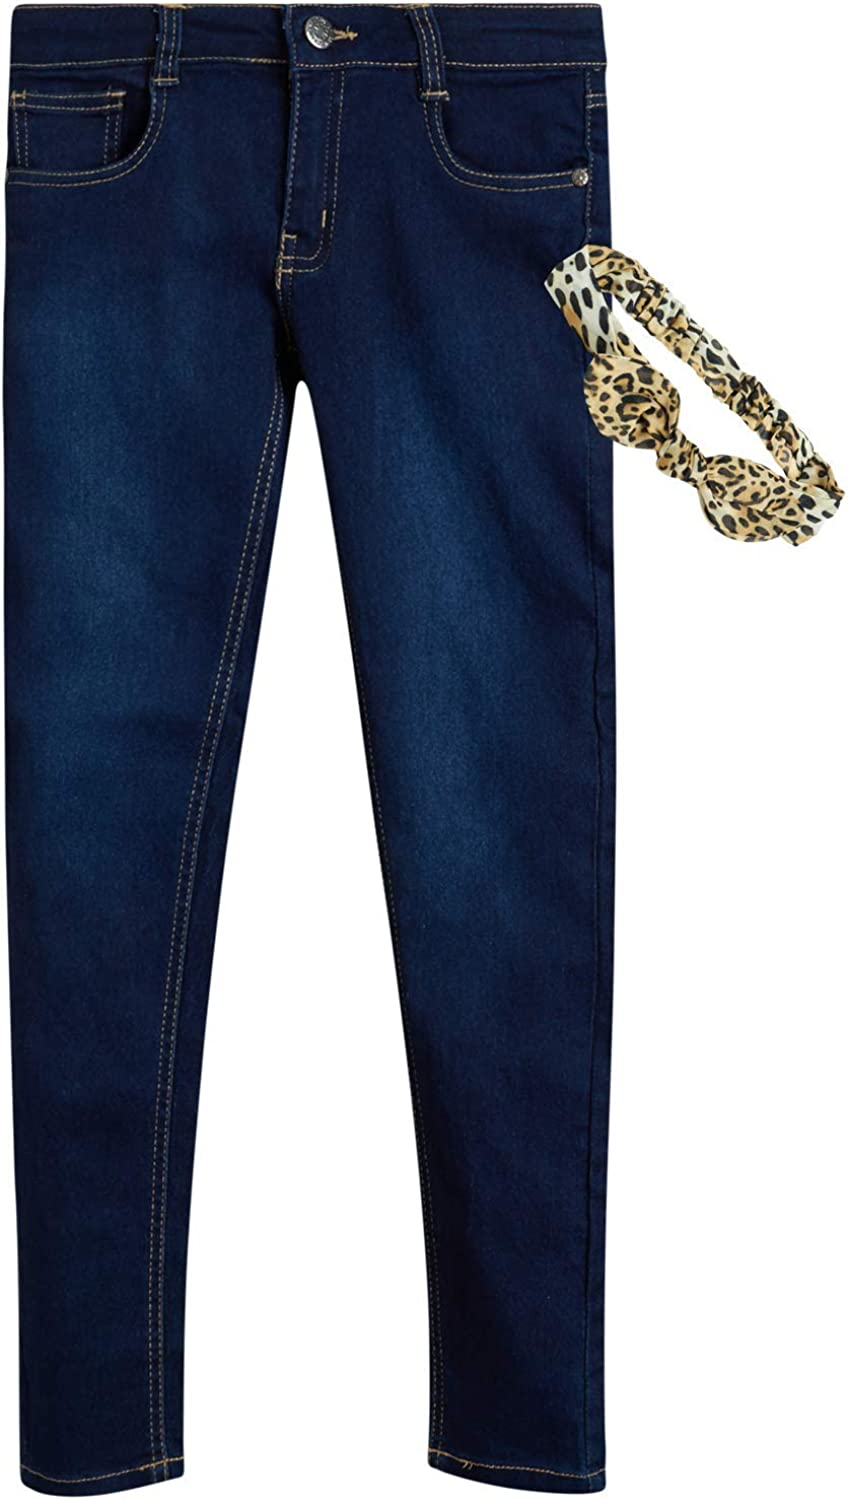 dELiAs Challenge the lowest price Girl's Jeans - Stretch Gift Scr Headband with Trust Denim